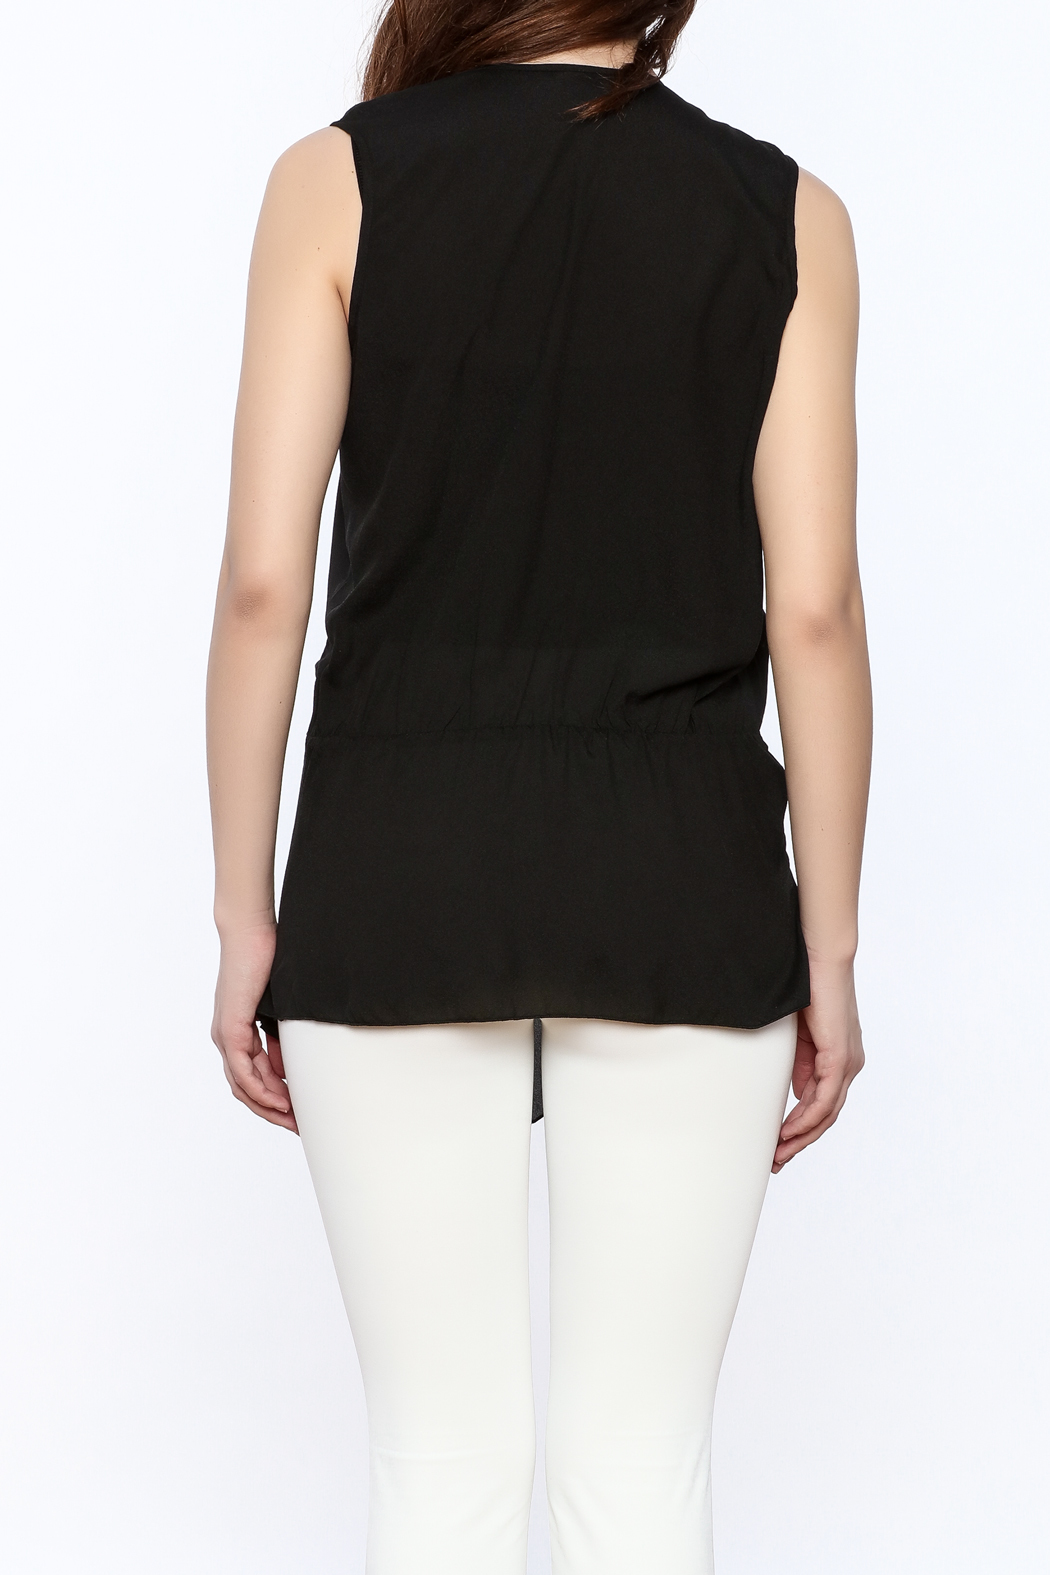 Esley Black Surplice Tunic Top - Back Cropped Image